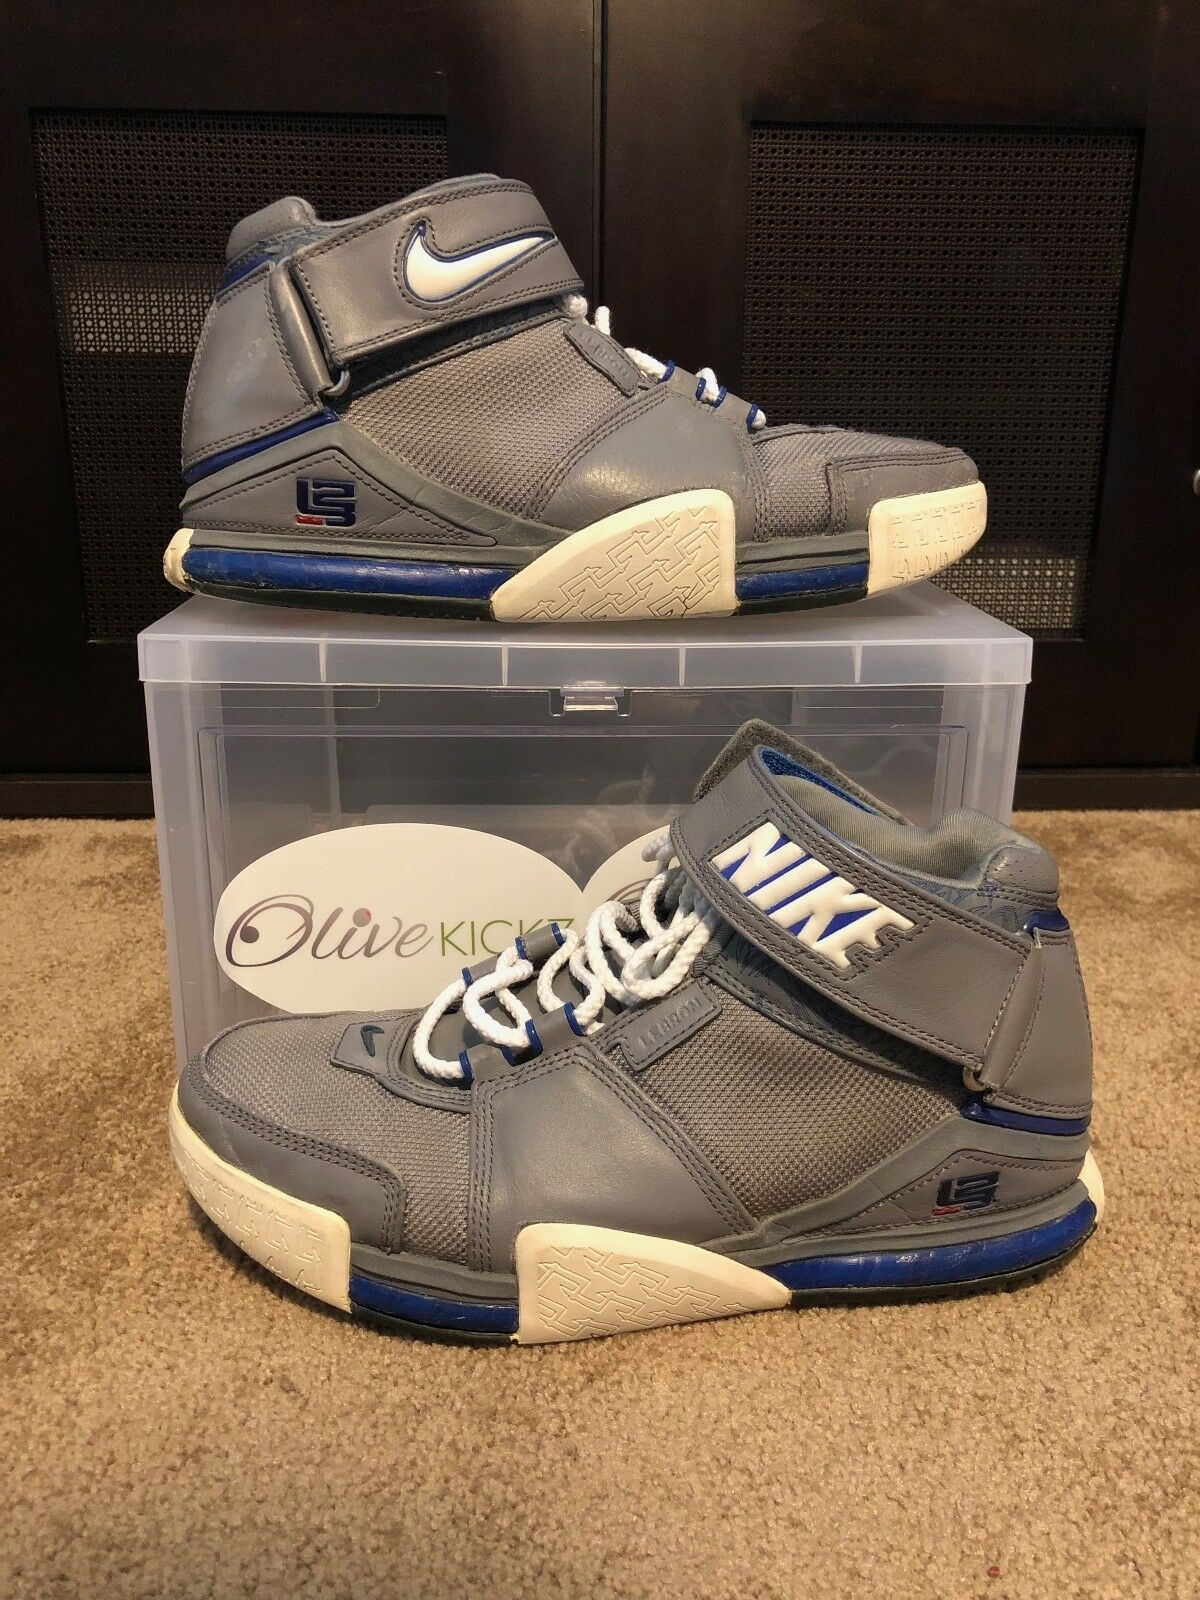 Lebron 2 Cool Grey All Star 309378-012 Size 8.5 Cracked USED